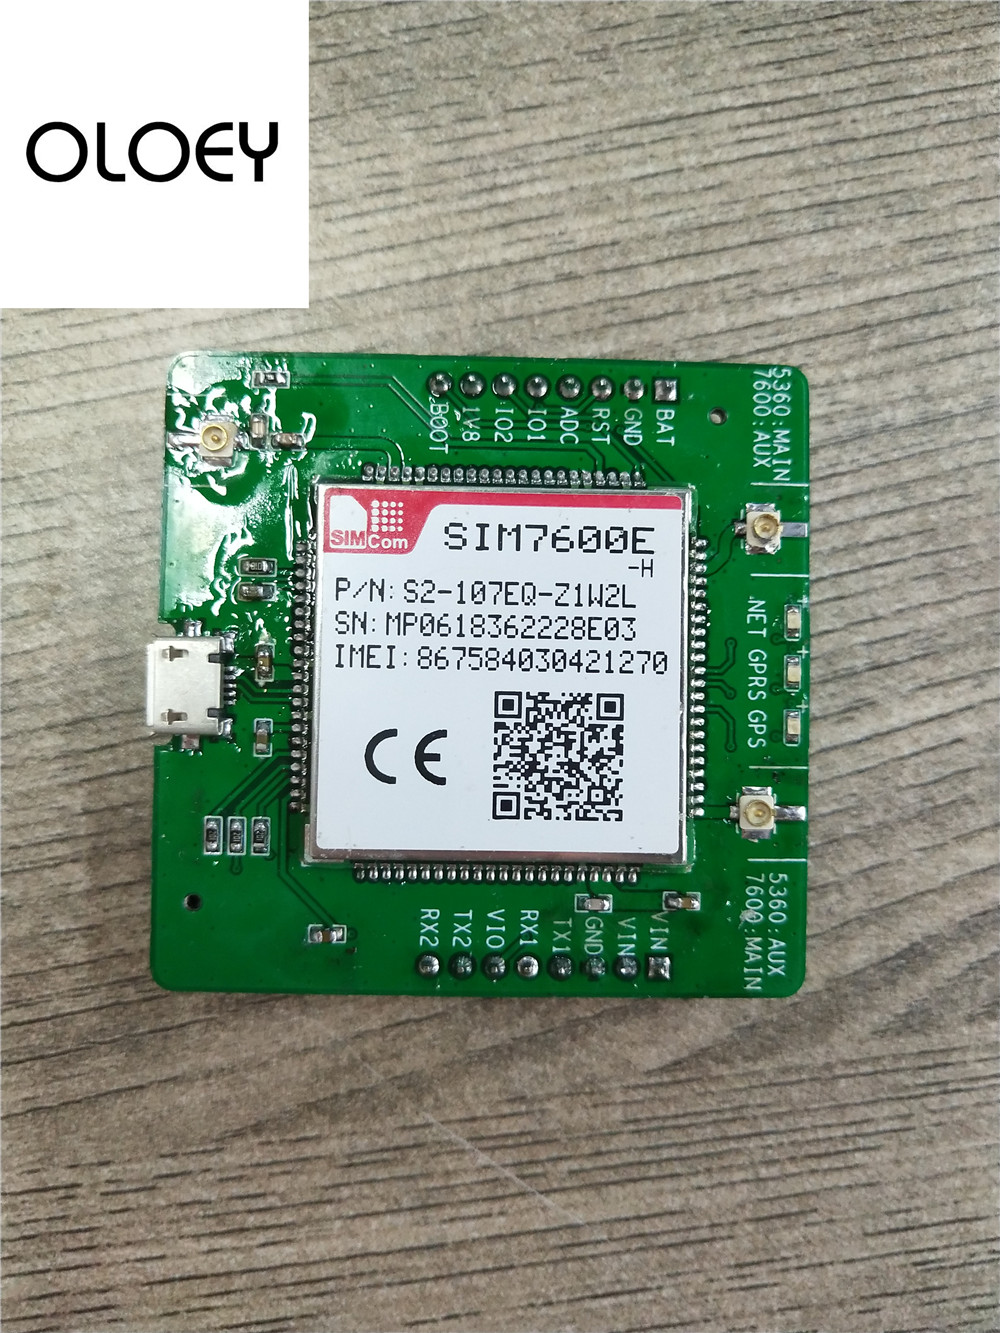 SIM7600E-H LTE Extended Boards, SIM7600E-H LTE KIT, USB TTL UART Interface